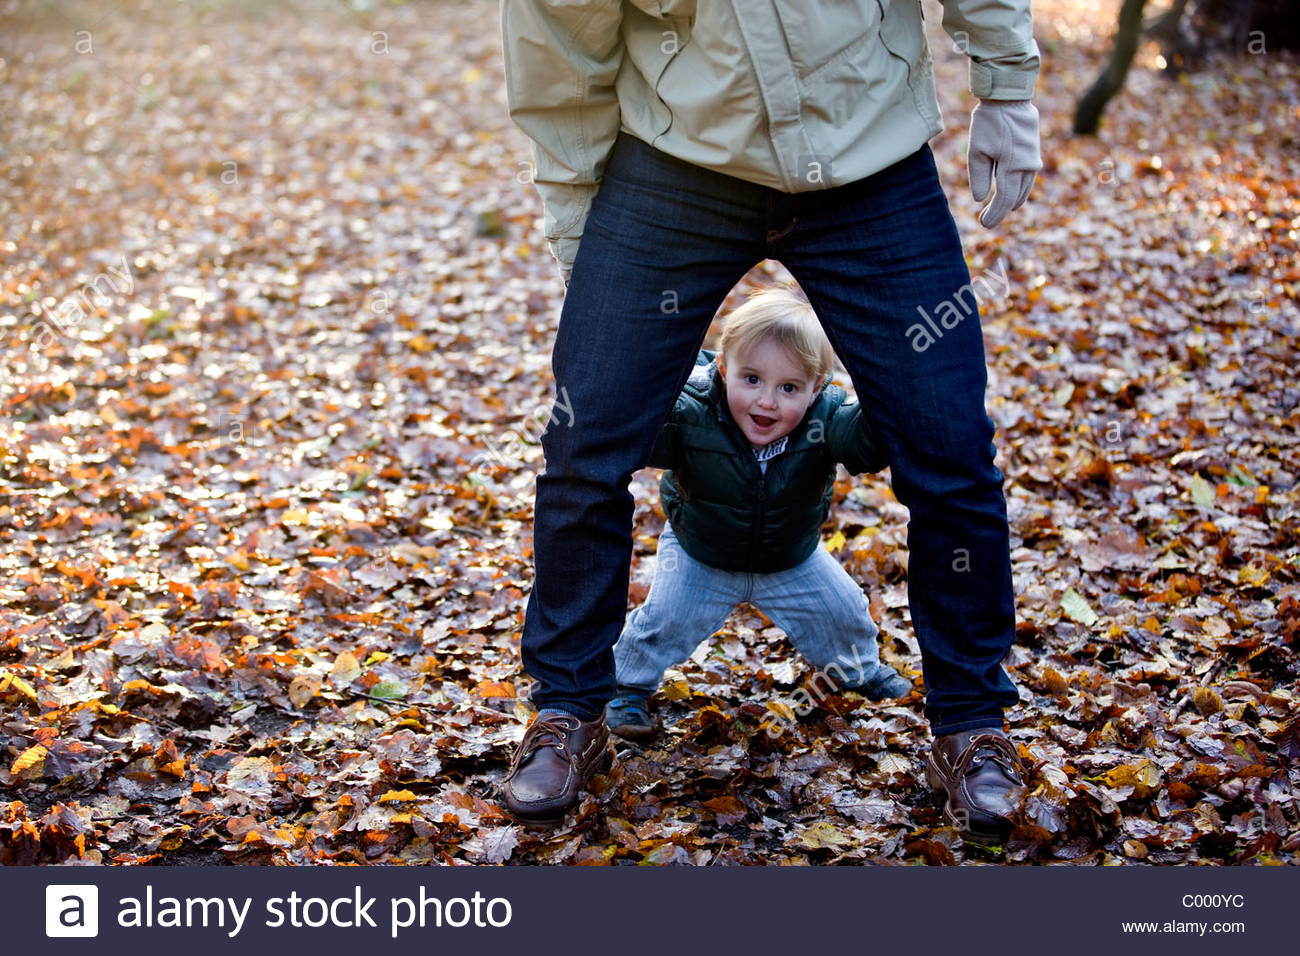 A young boy looking through his father's legs - Stock Image